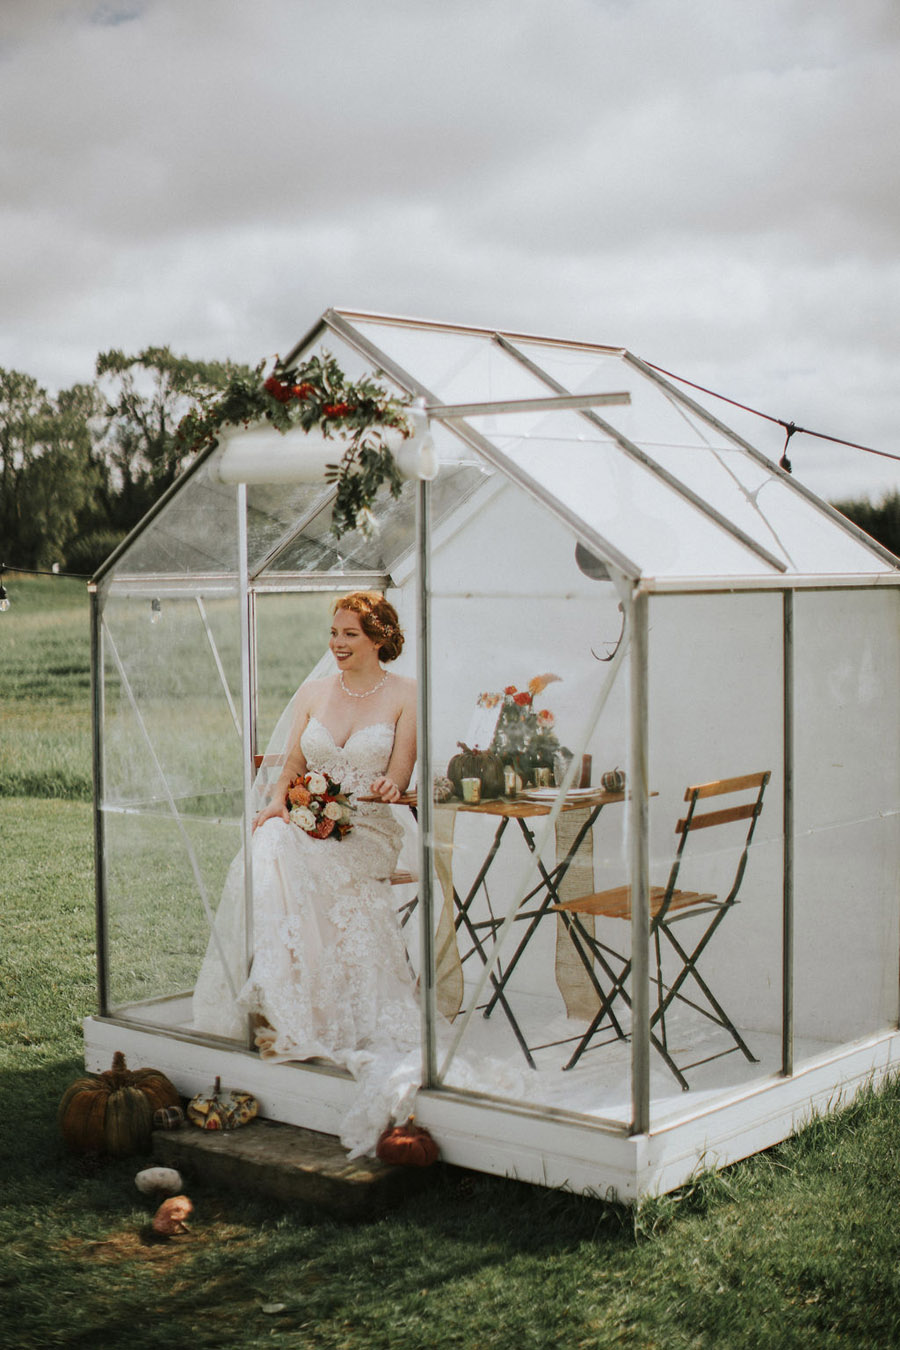 Cosy, snug and rustic wedding inspiration at The Scenic Supper venue (21)